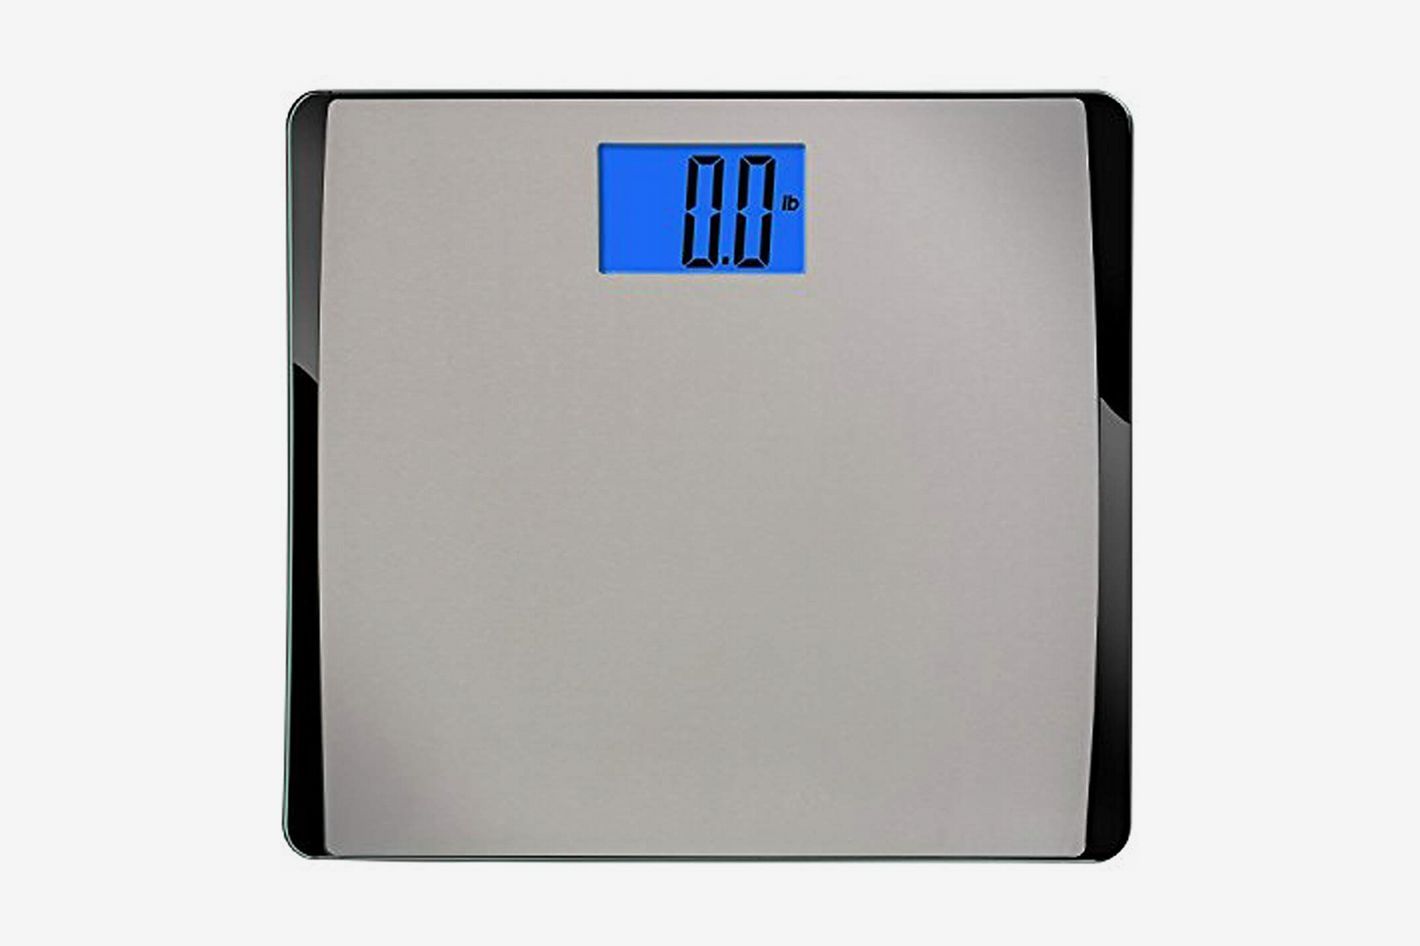 EatSmart Precision Extra Wide Digital Bath Scale